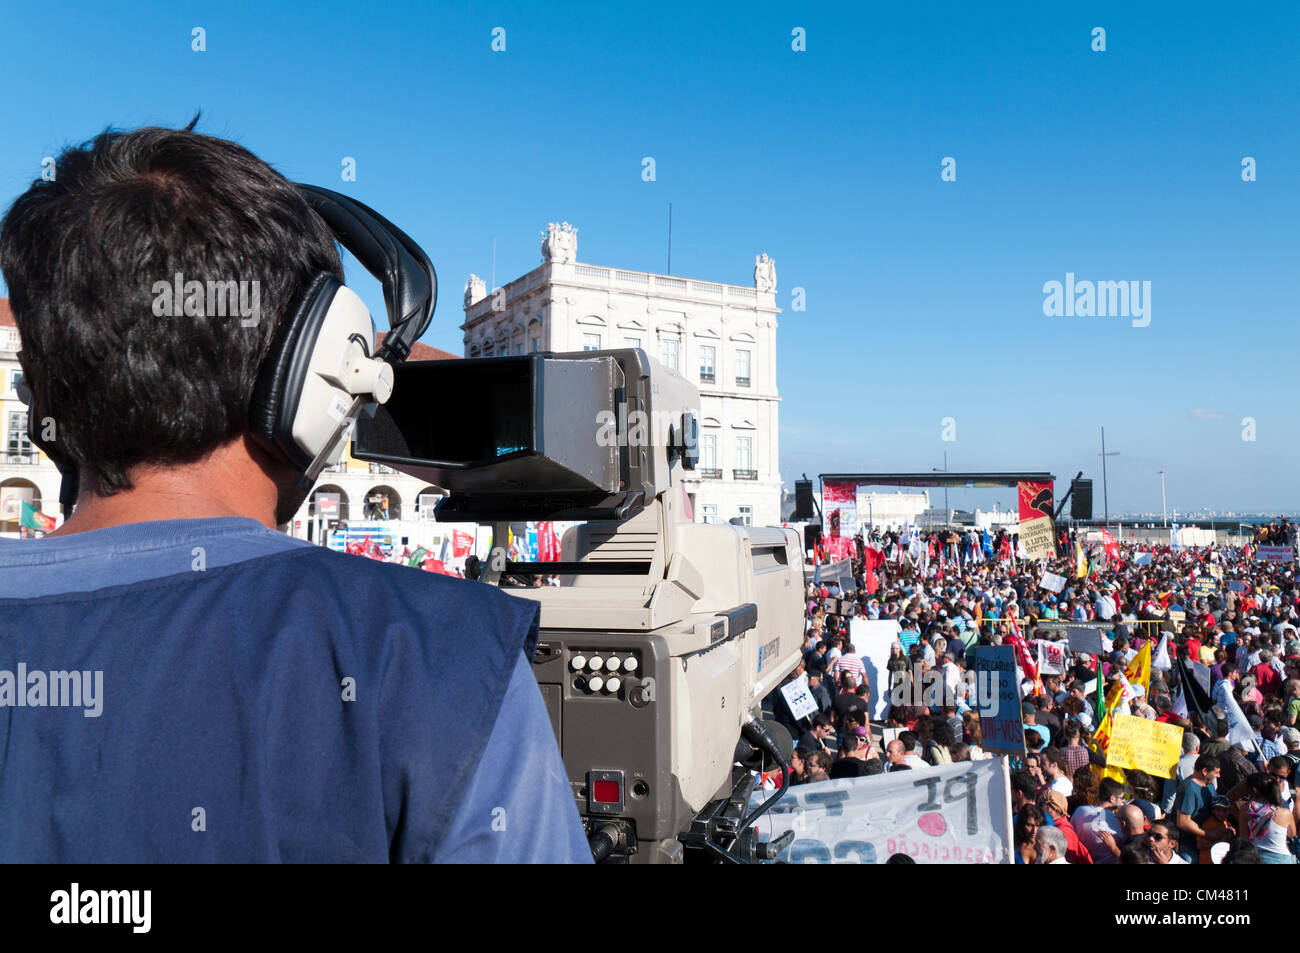 Cameraman / reporter / photographer covering the peaceful protest organised by the CGTP union gathers activists - Stock Image